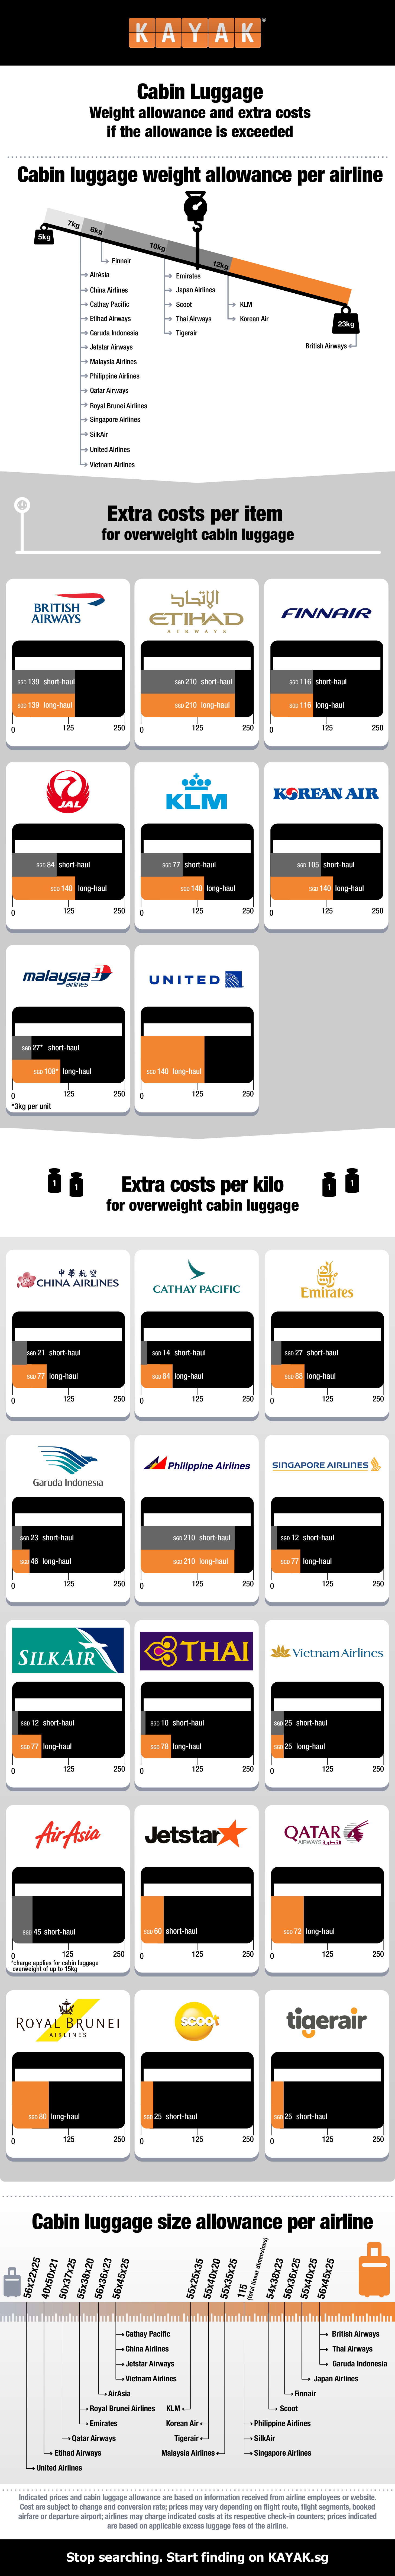 KAYAK.sg reveals costs for excess cabin luggage infographic